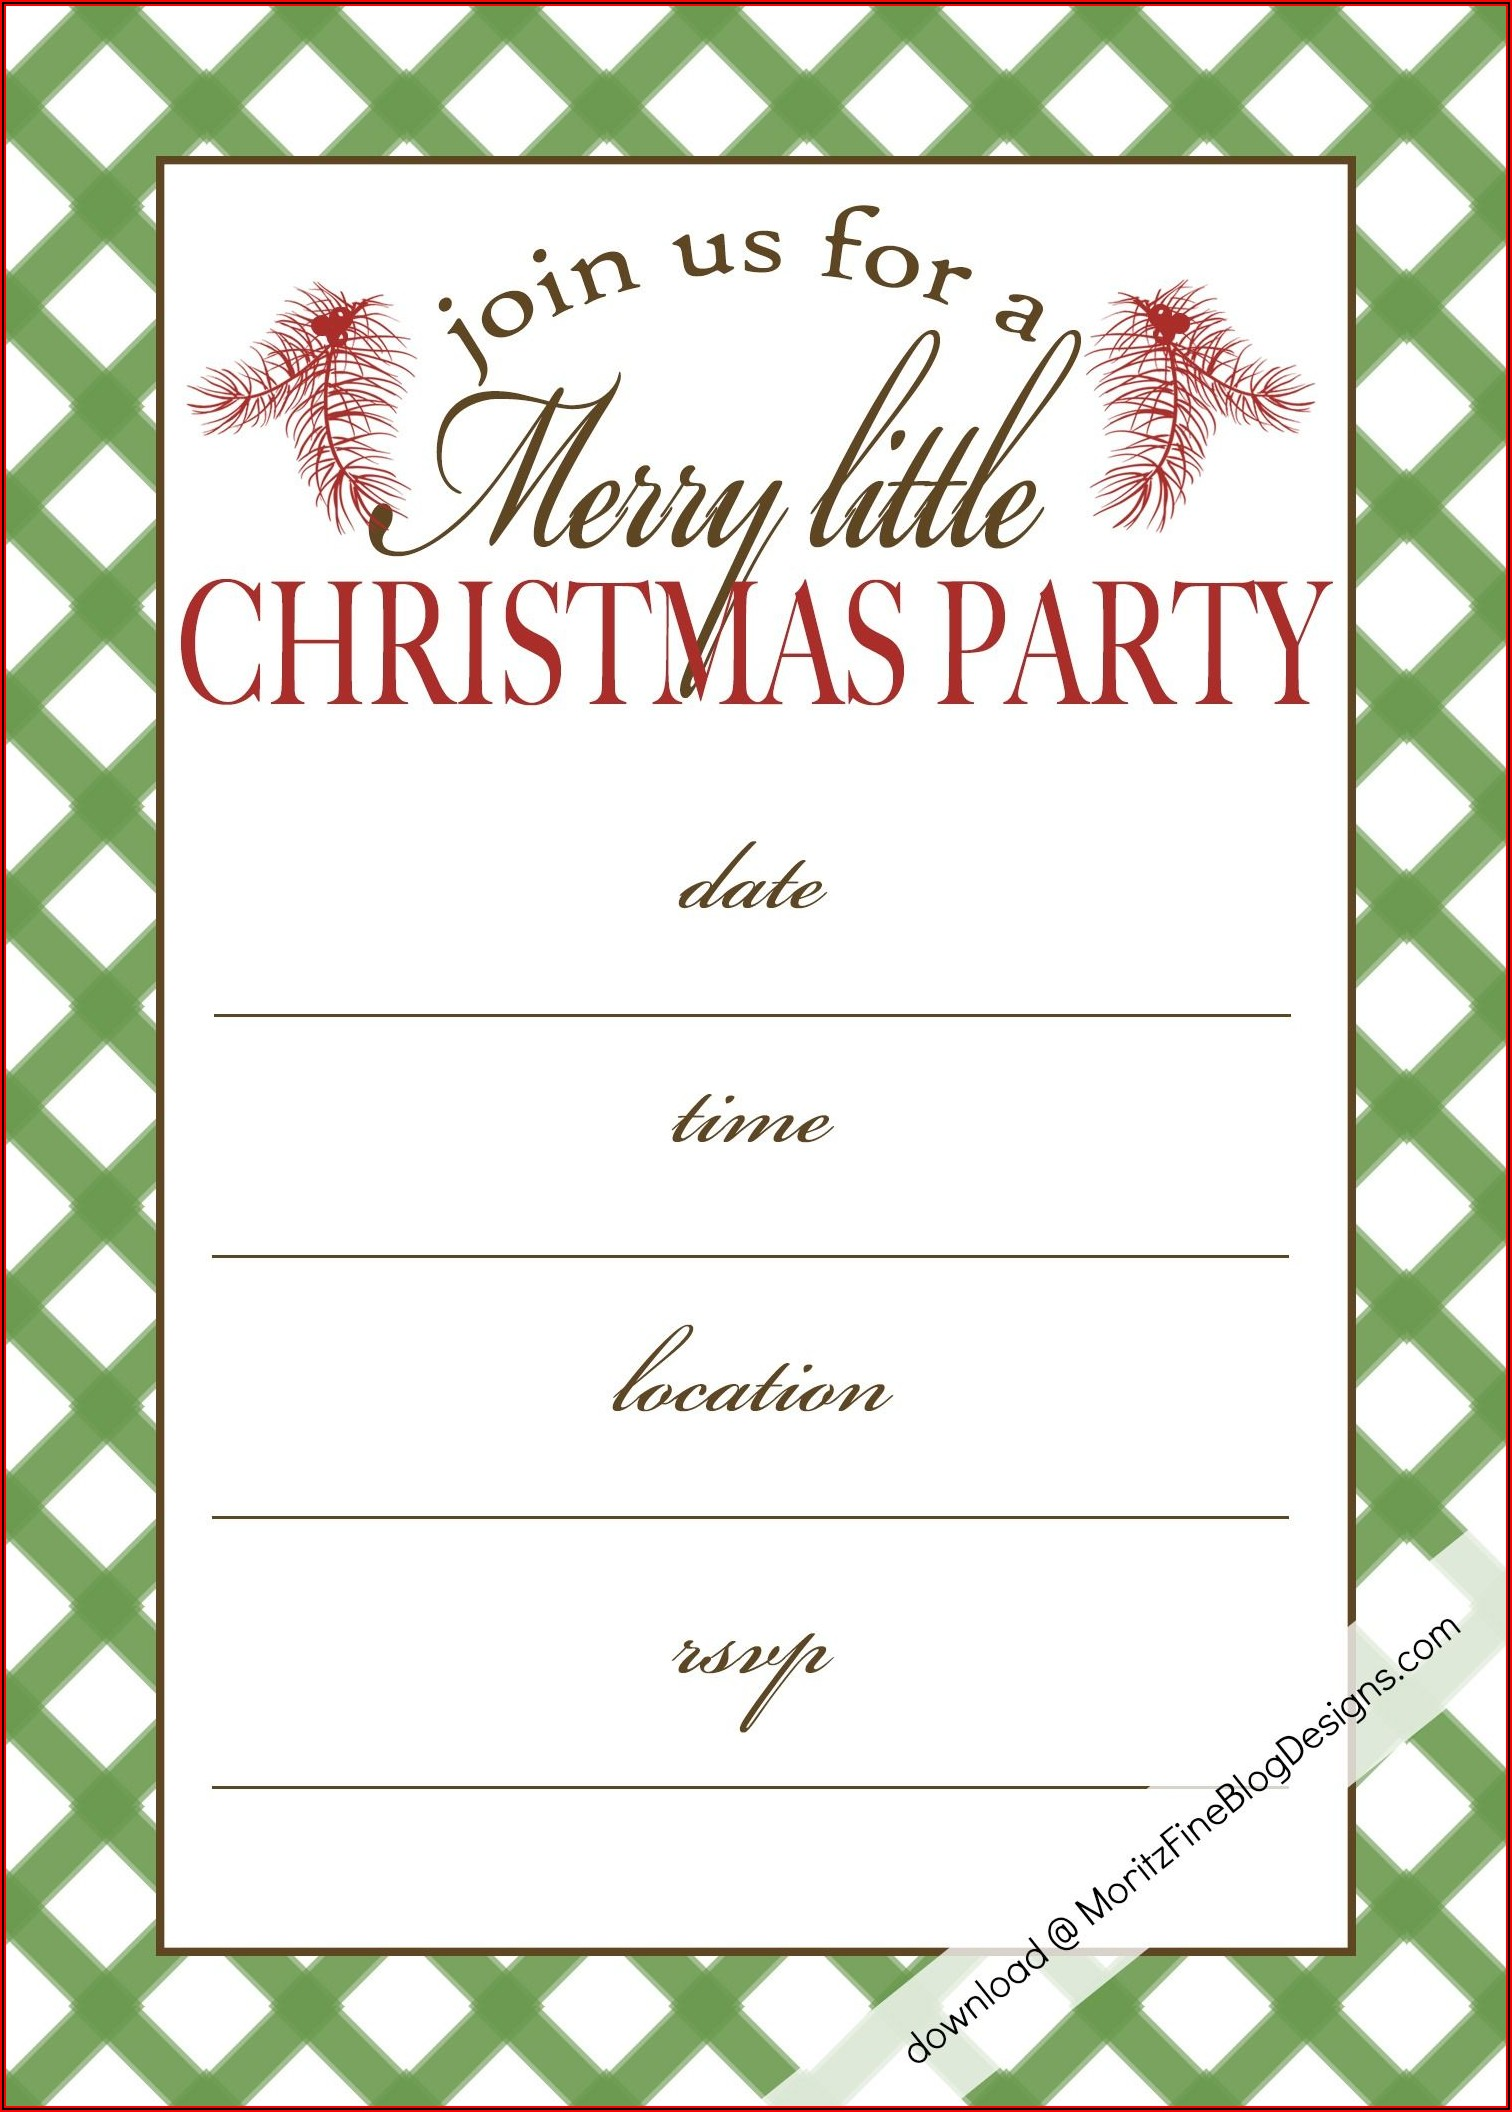 Free Online Christmas Invite Templates